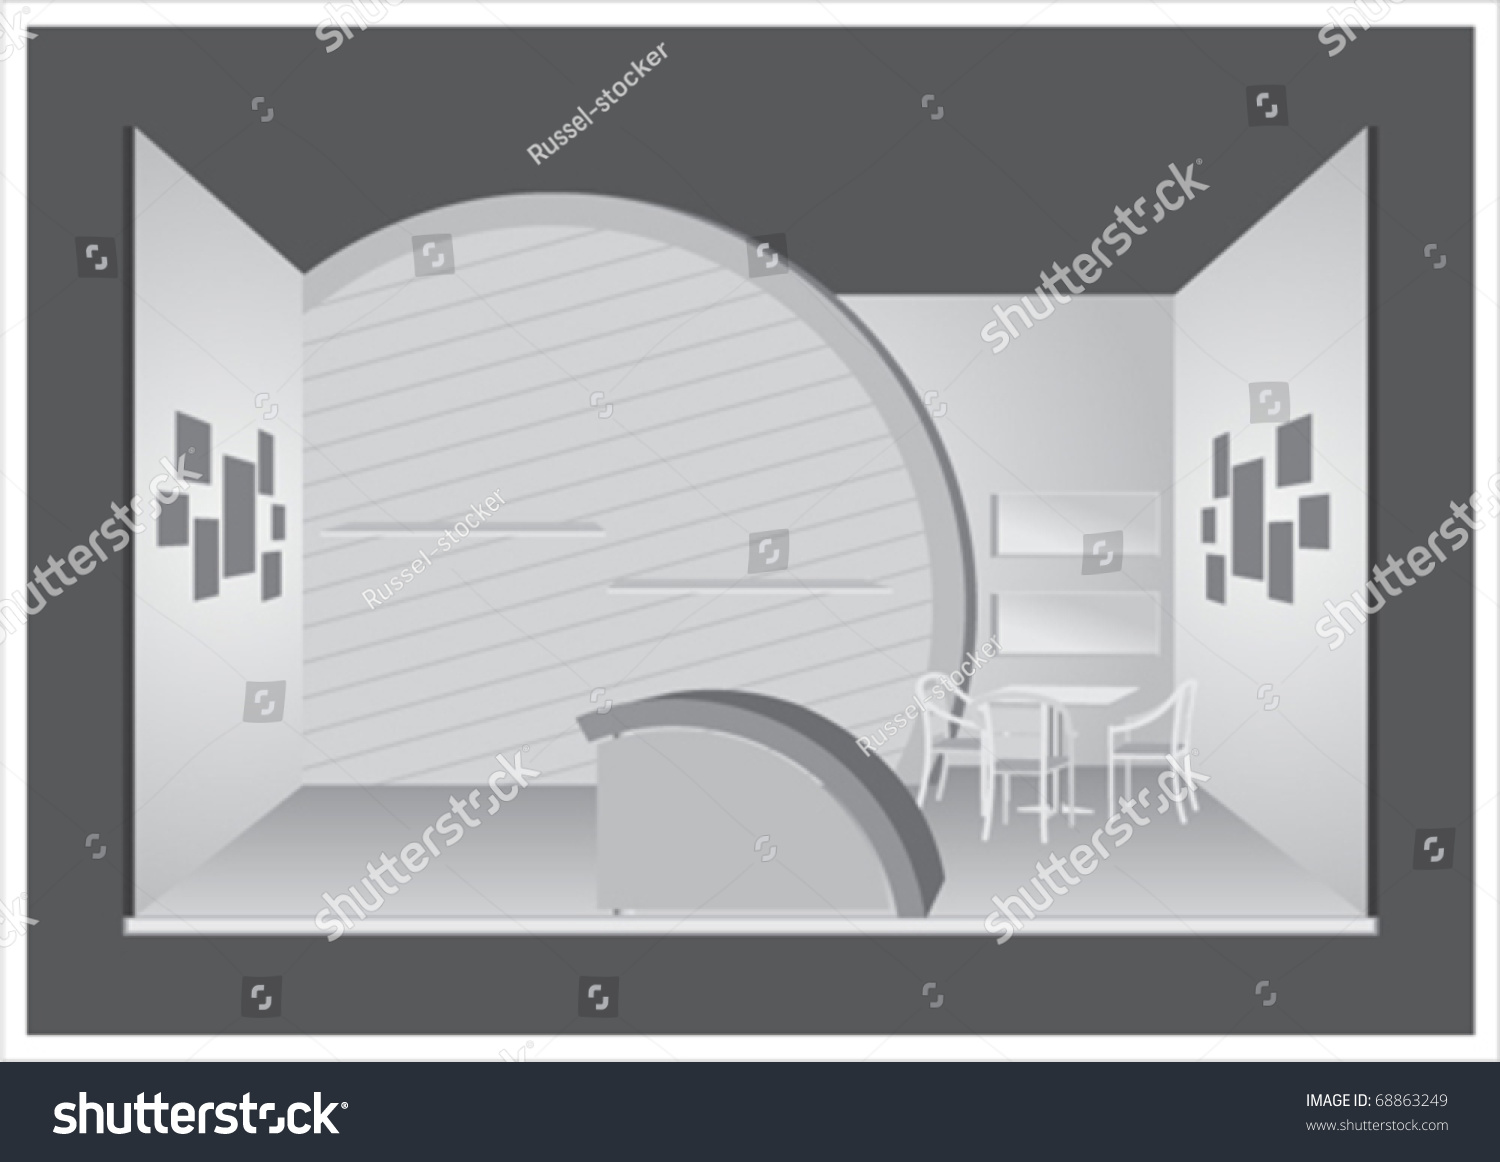 Exhibition Stand Vector : Vector exhibition stand  shutterstock